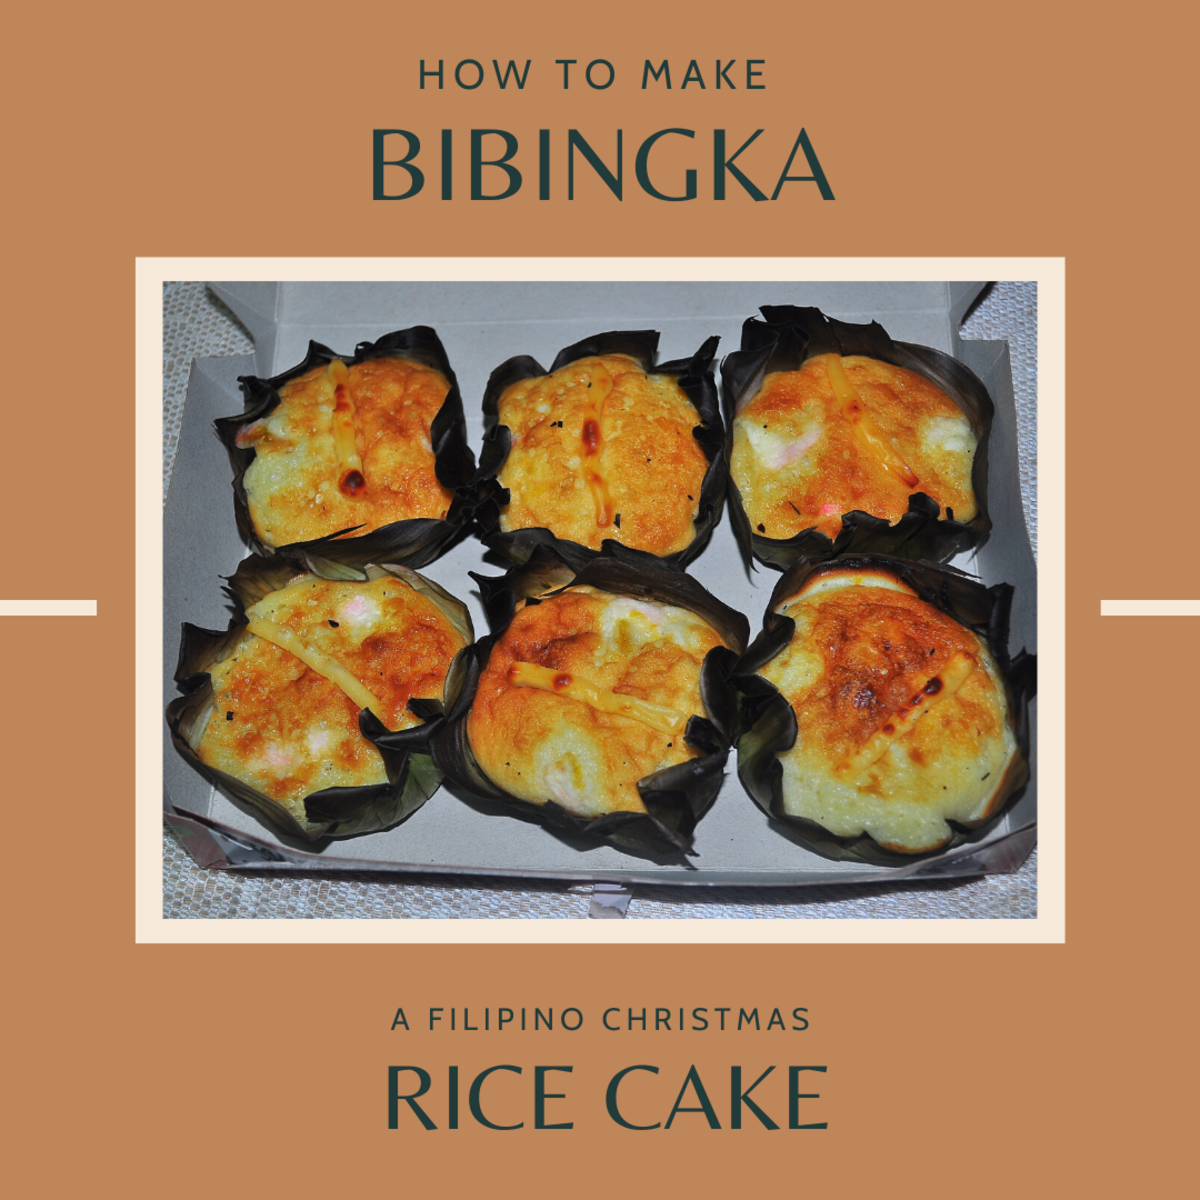 Easy Filipino Bibingka (Rice Cake) Recipe for Christmas